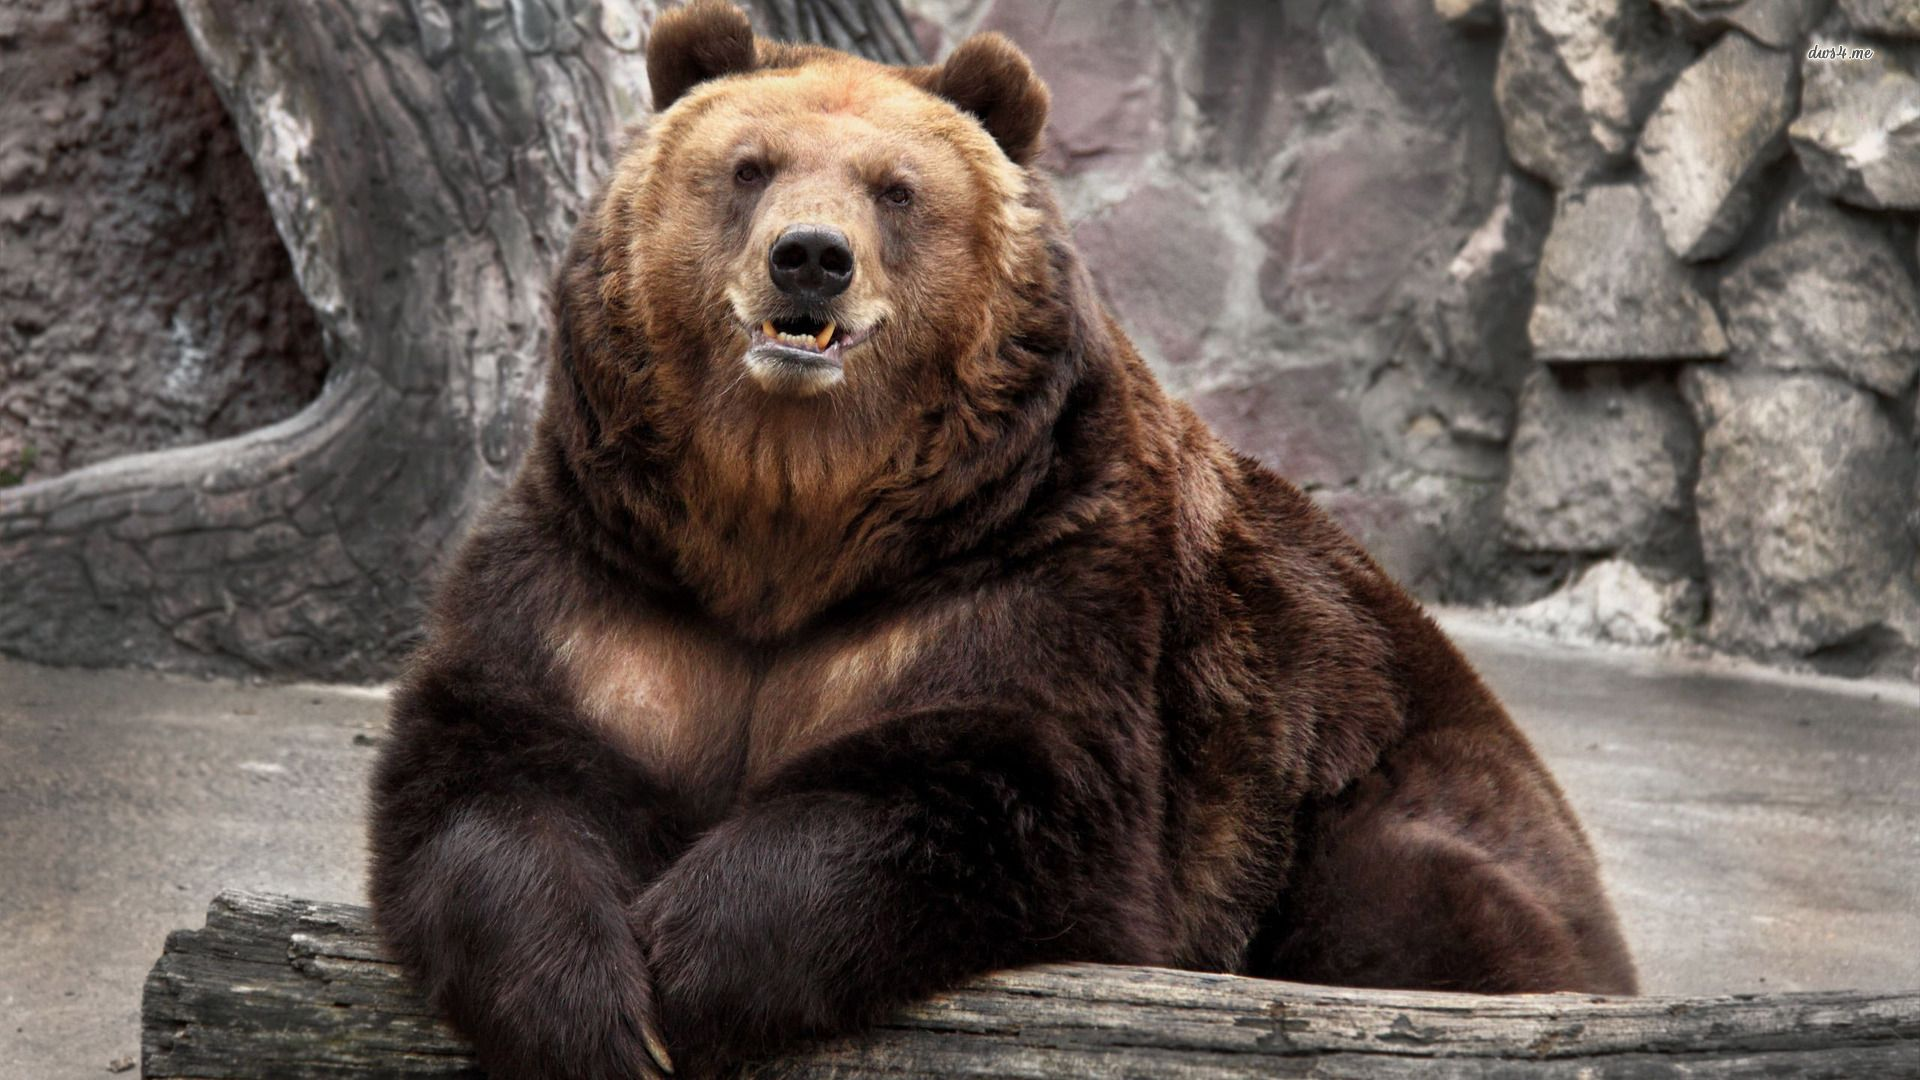 bear - google search | animals | pinterest | hd wallpaper, wallpaper